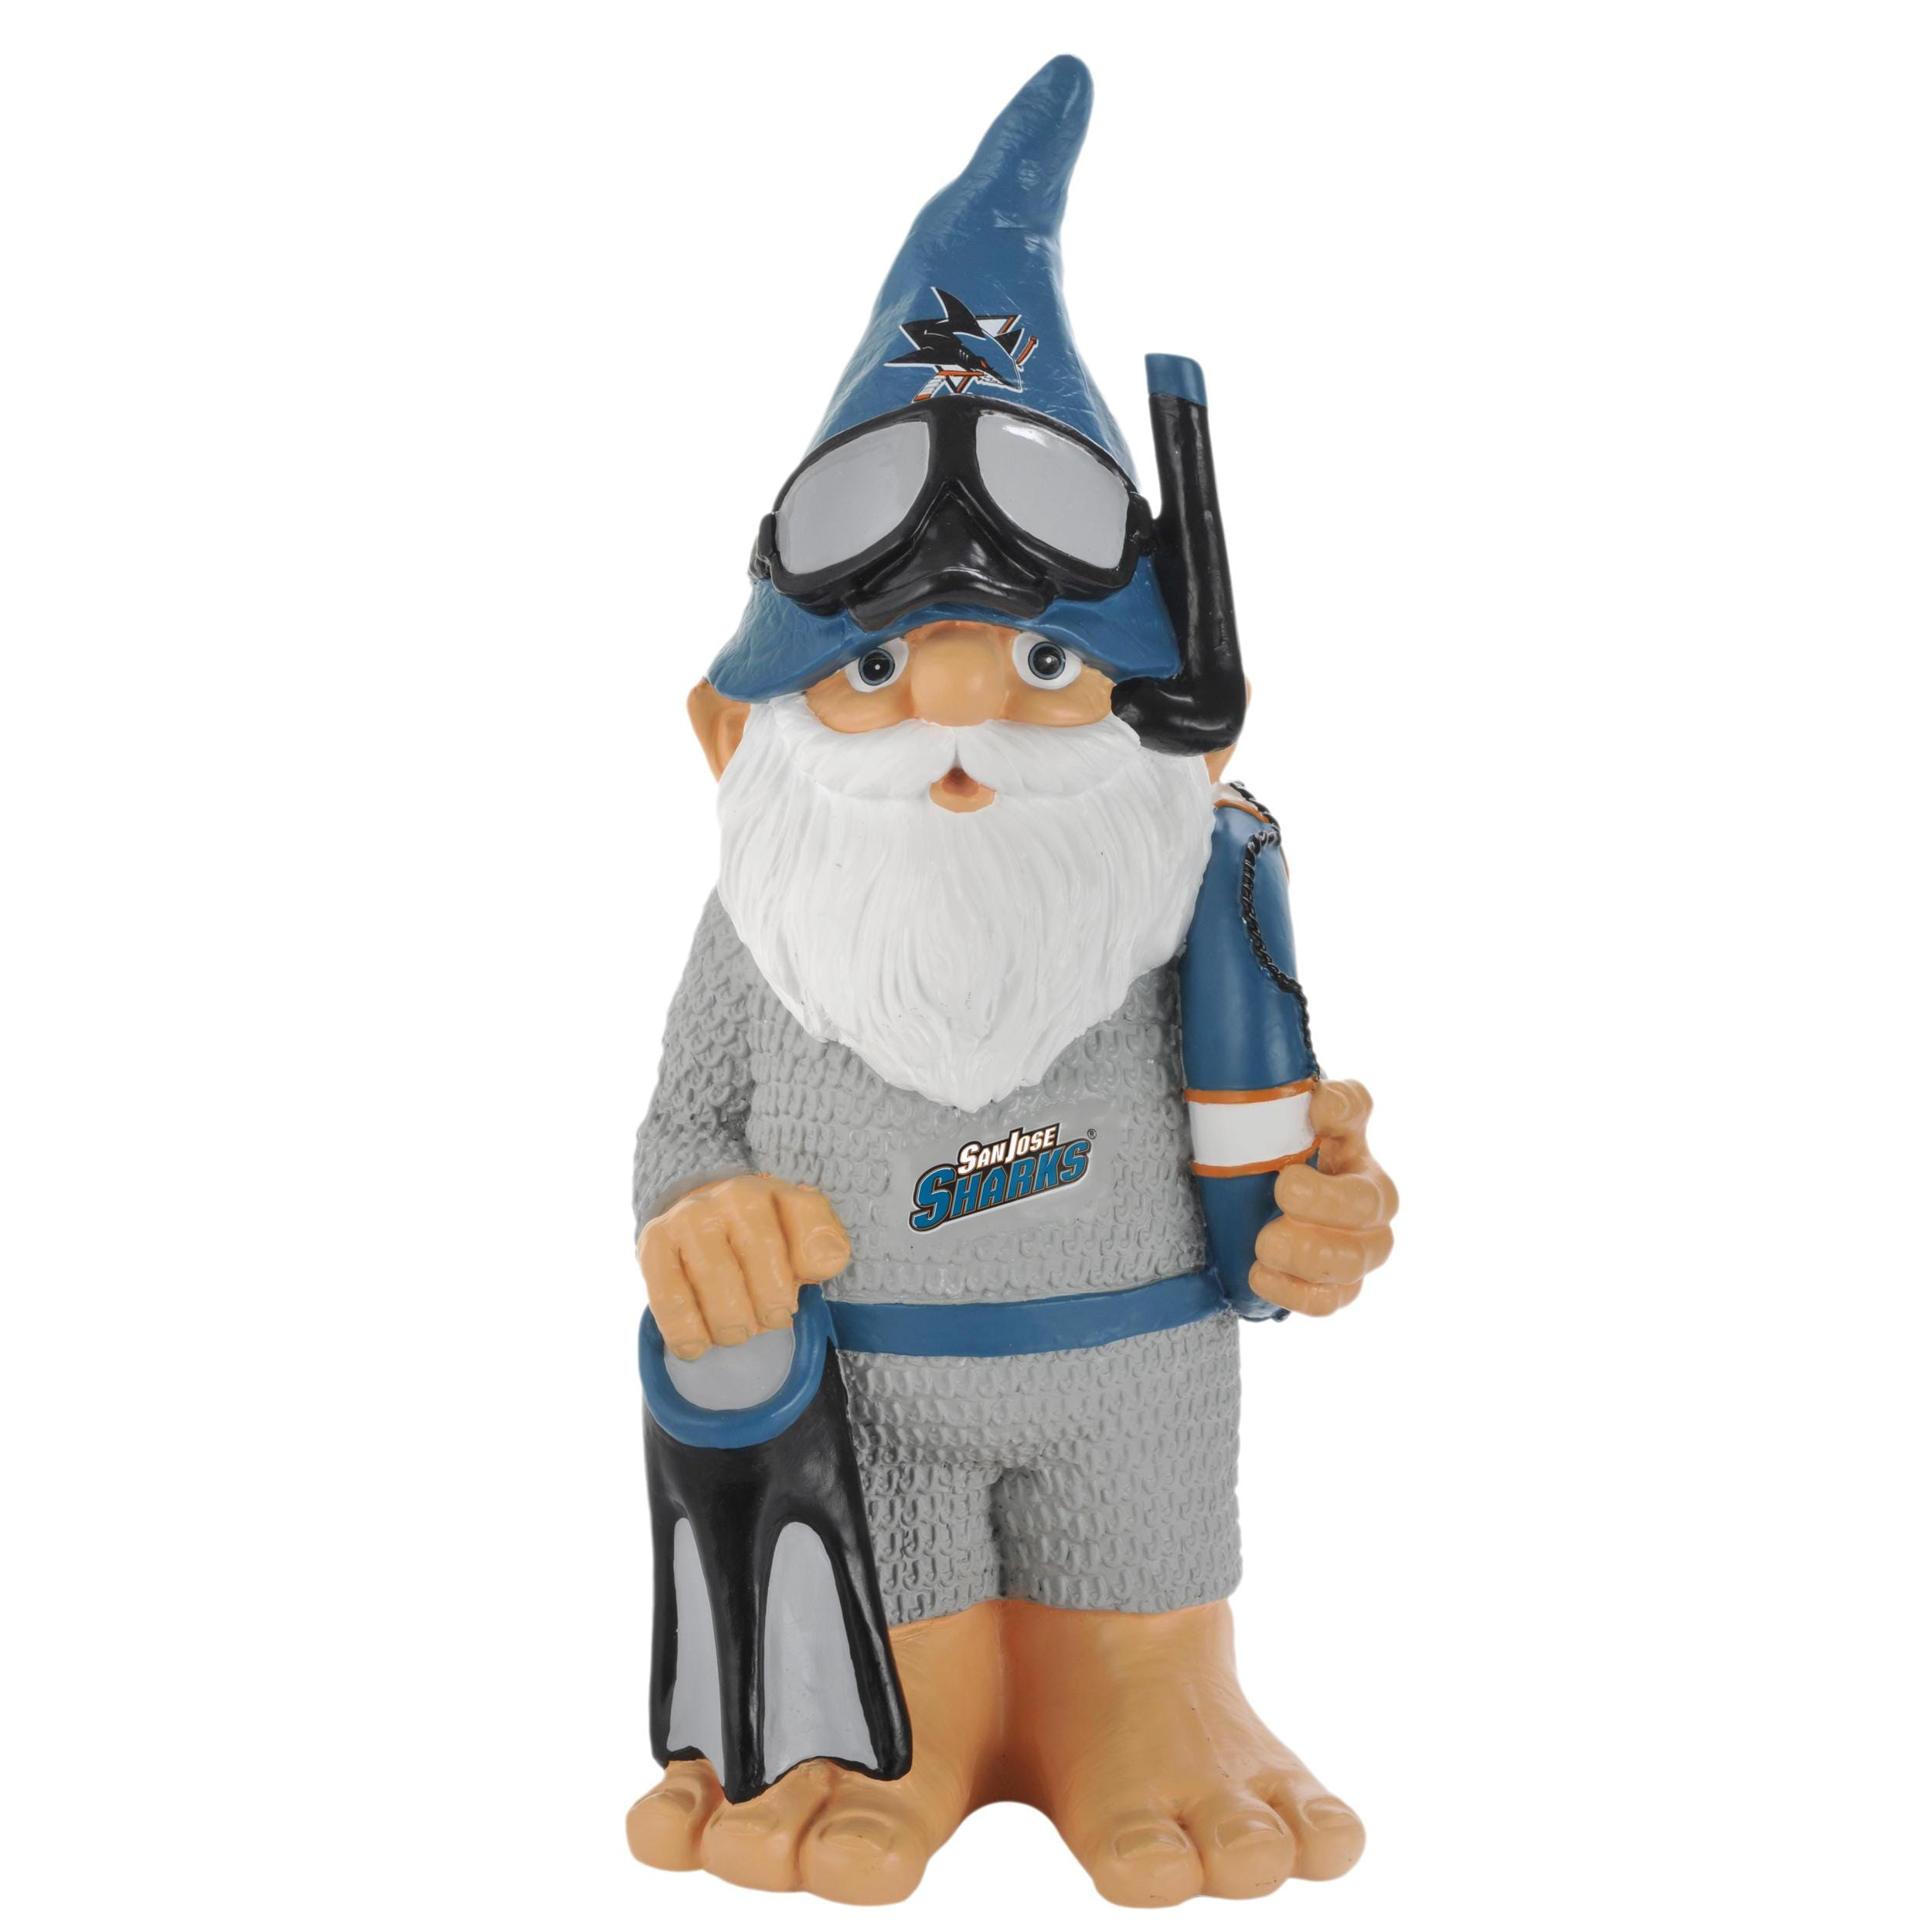 San Jose Sharks 11-inch Thematic Garden Gnome